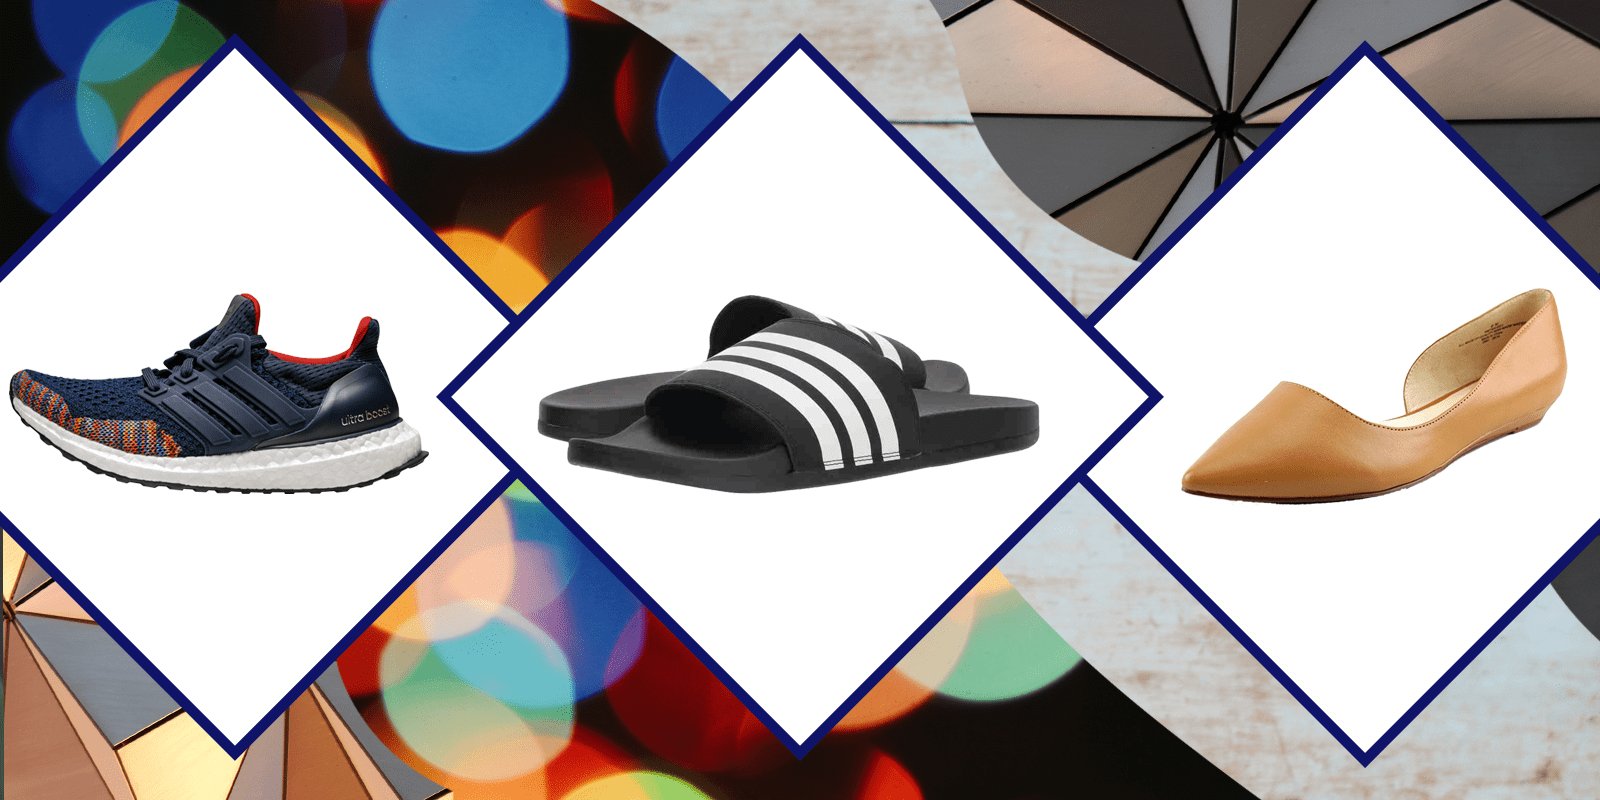 The 15 best shoes for travel